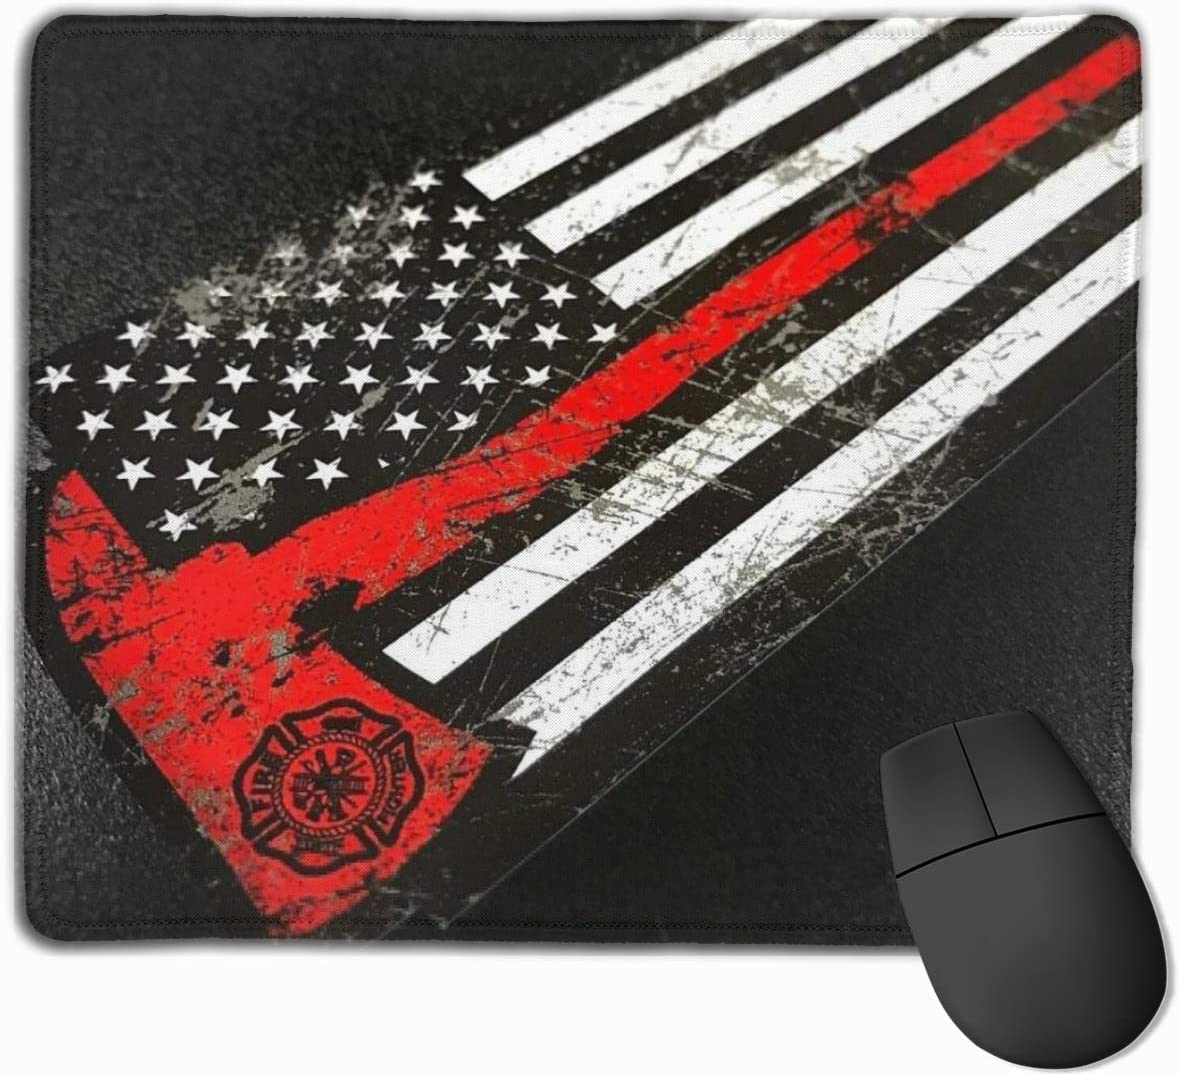 Firefighter Mouse Pad Gaming , Thin Red Line American Flag Mouse Pad Large Gaming Mouse Mat for Computer Laptop Desk